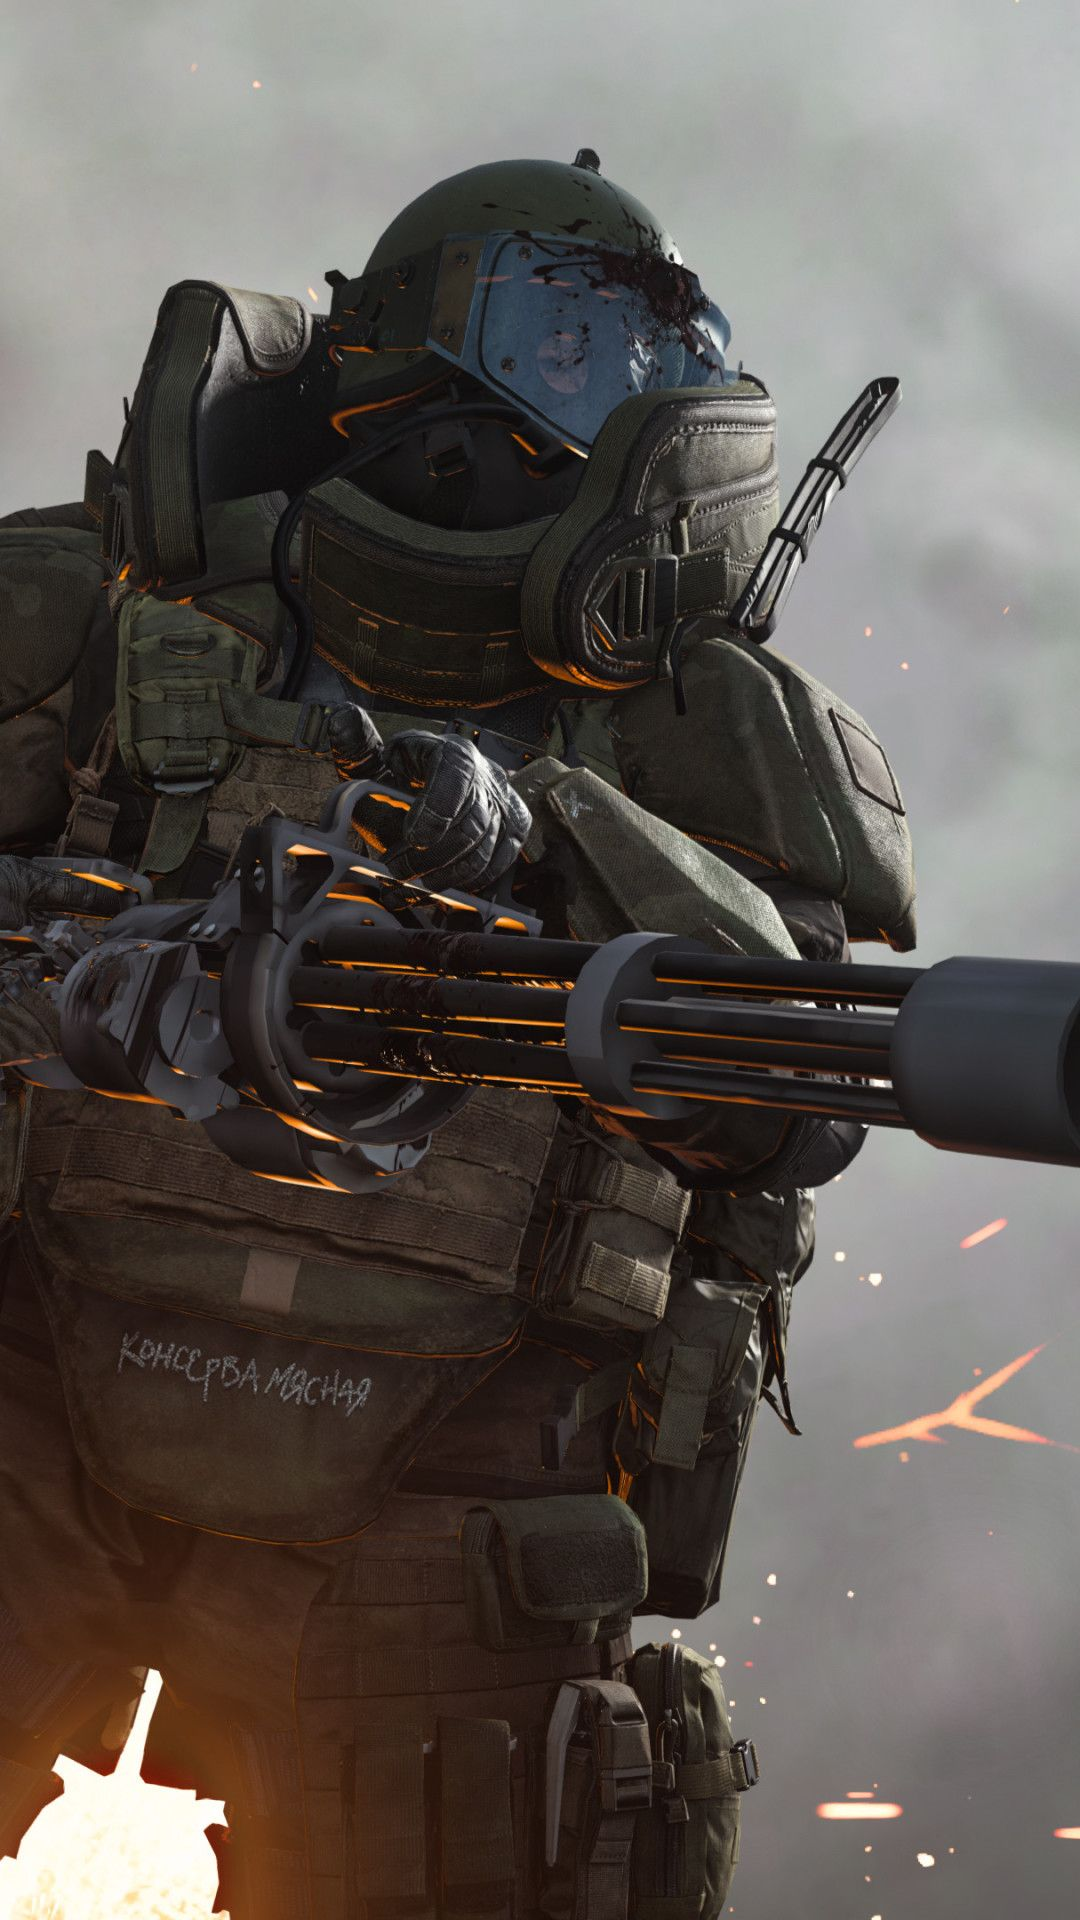 Call Of Duty Modern Warfare Spec Ops 4k Mobile Wallpaper Iphone Android Samsung Pixel Xi En 2020 Perros Militares Arte Militar Descargas De Fondos De Pantalla